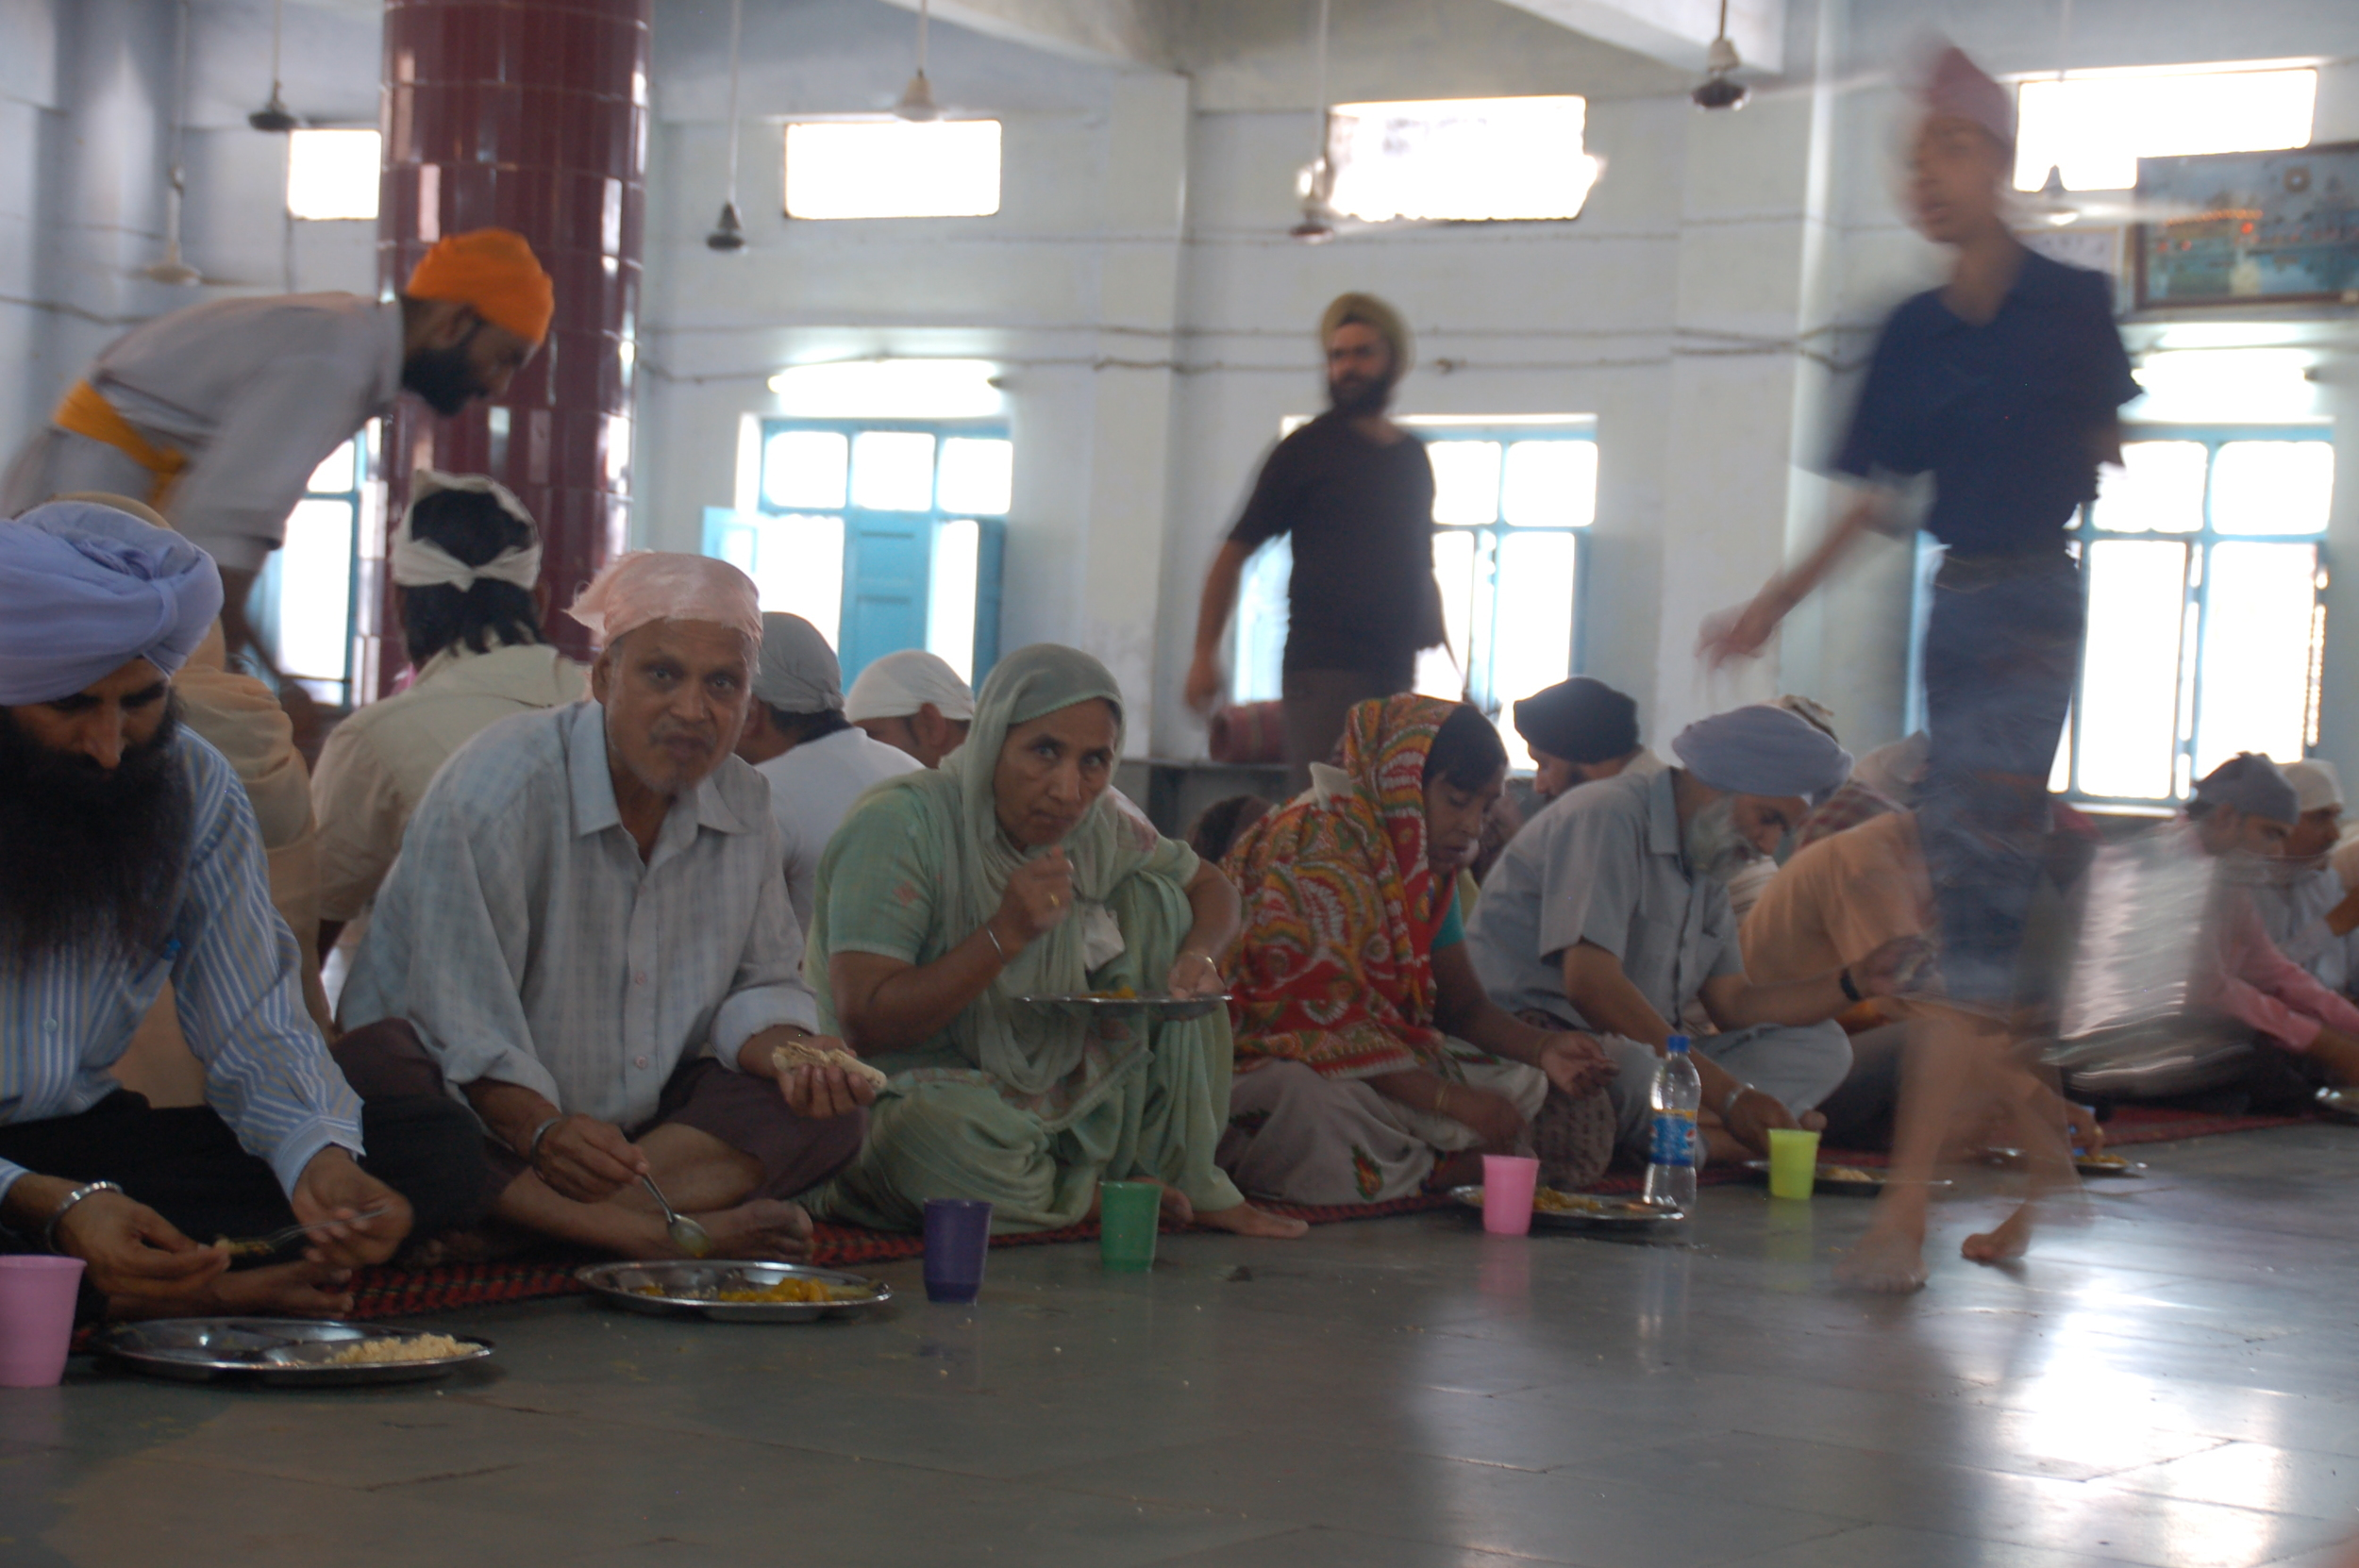 Chowing at the Sikh Temple